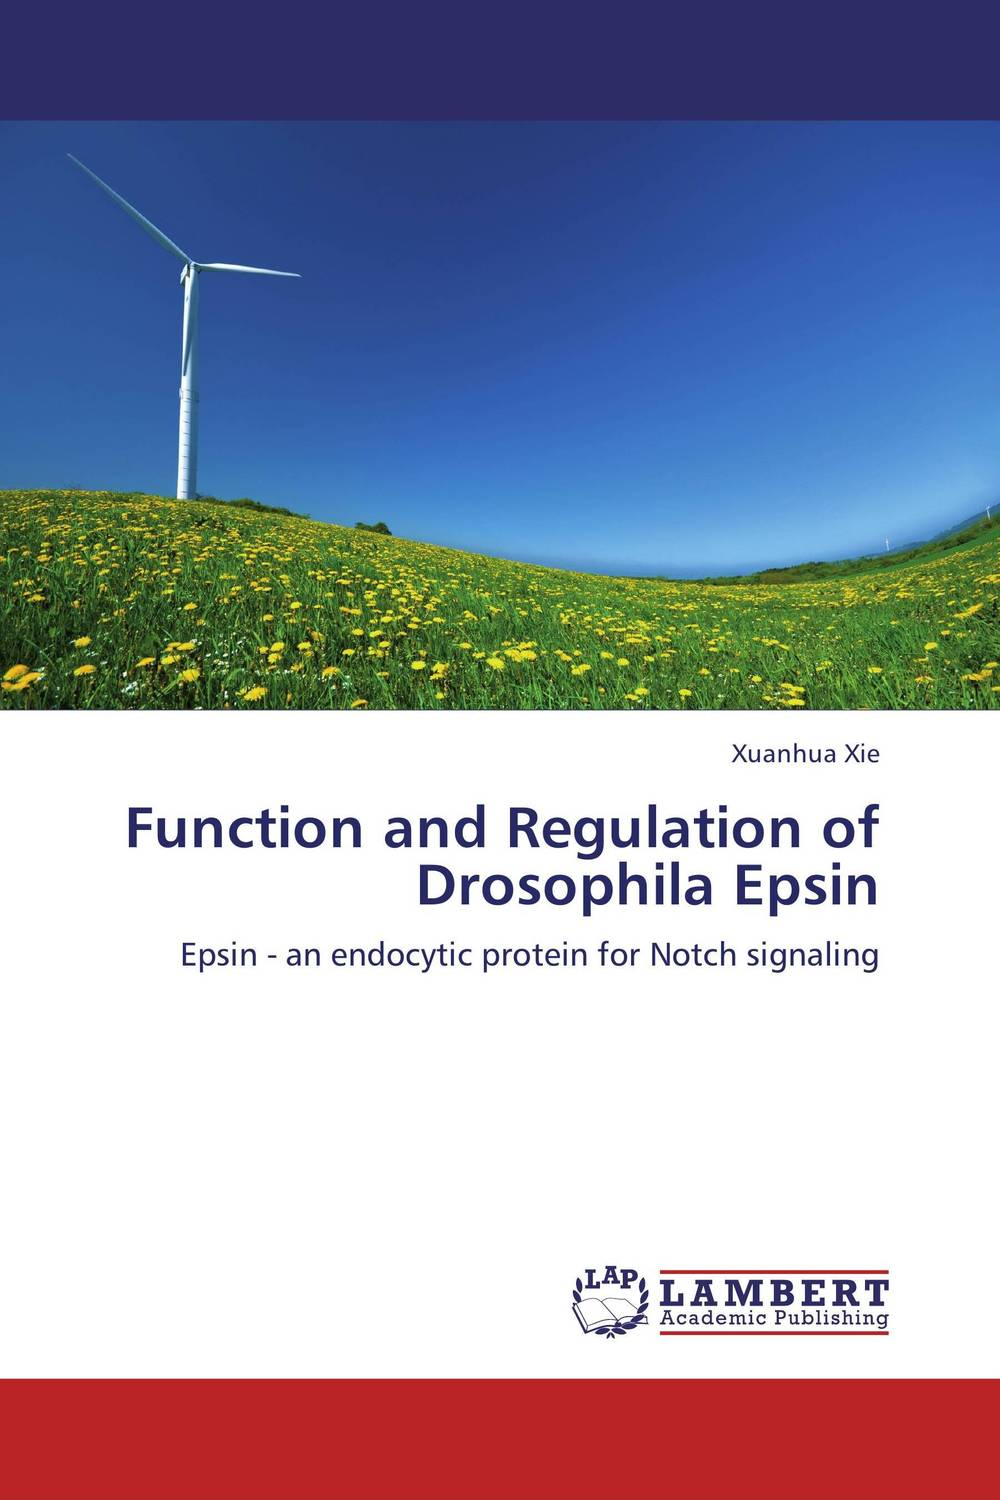 Function and Regulation of Drosophila Epsin joshua boucher regulation of vascular smooth muscle phenotype by notch signaling